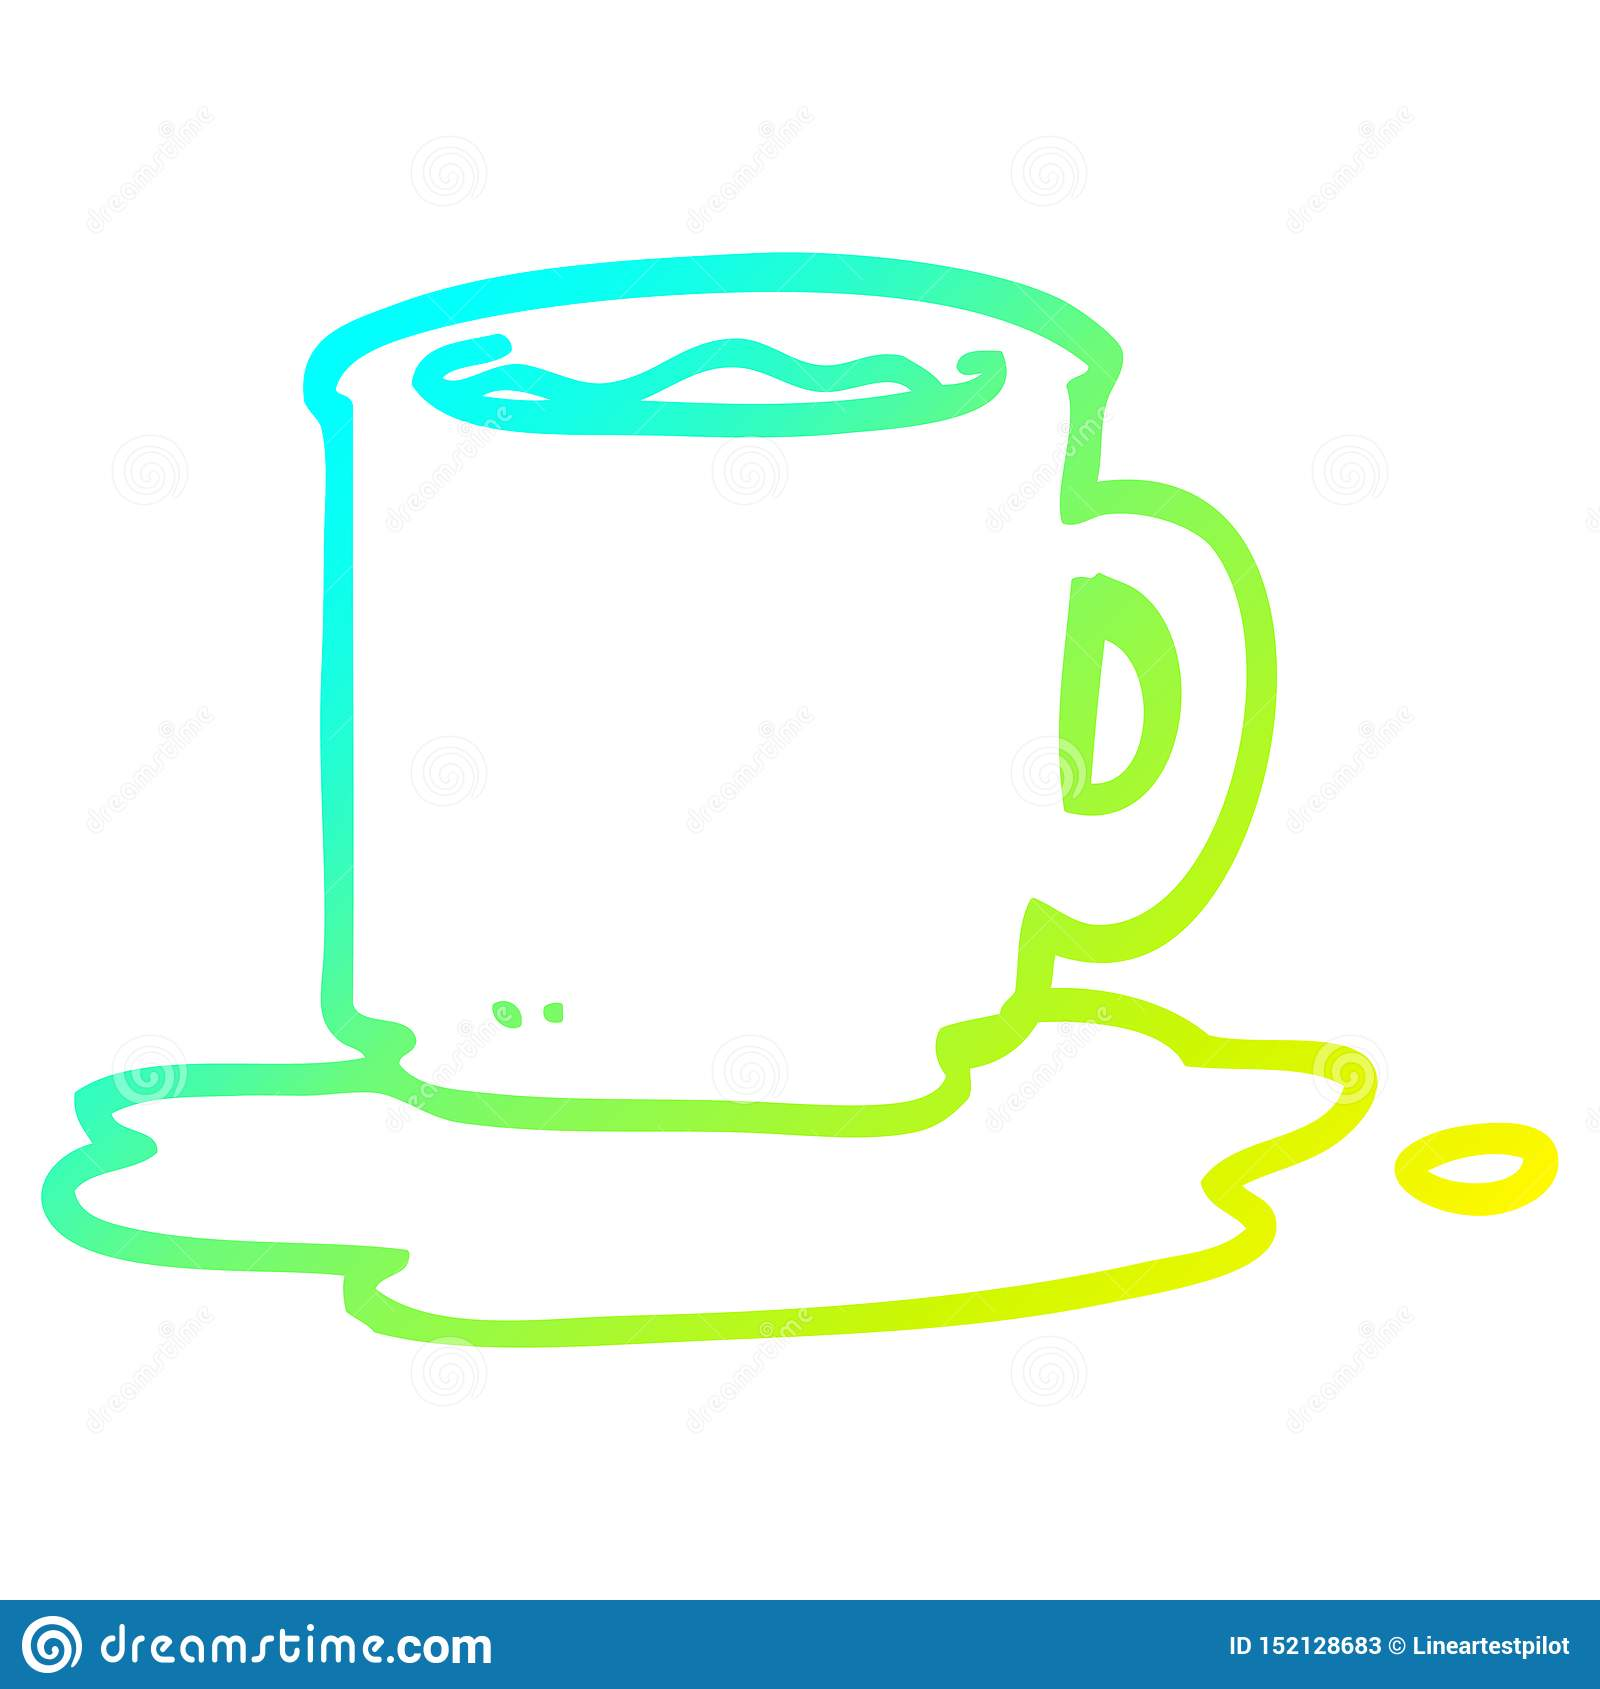 A Creative Cold Gradient Line Drawing Cartoon Mug Of Coffee Stock Vector Illustration Of Line Doodle 152128683